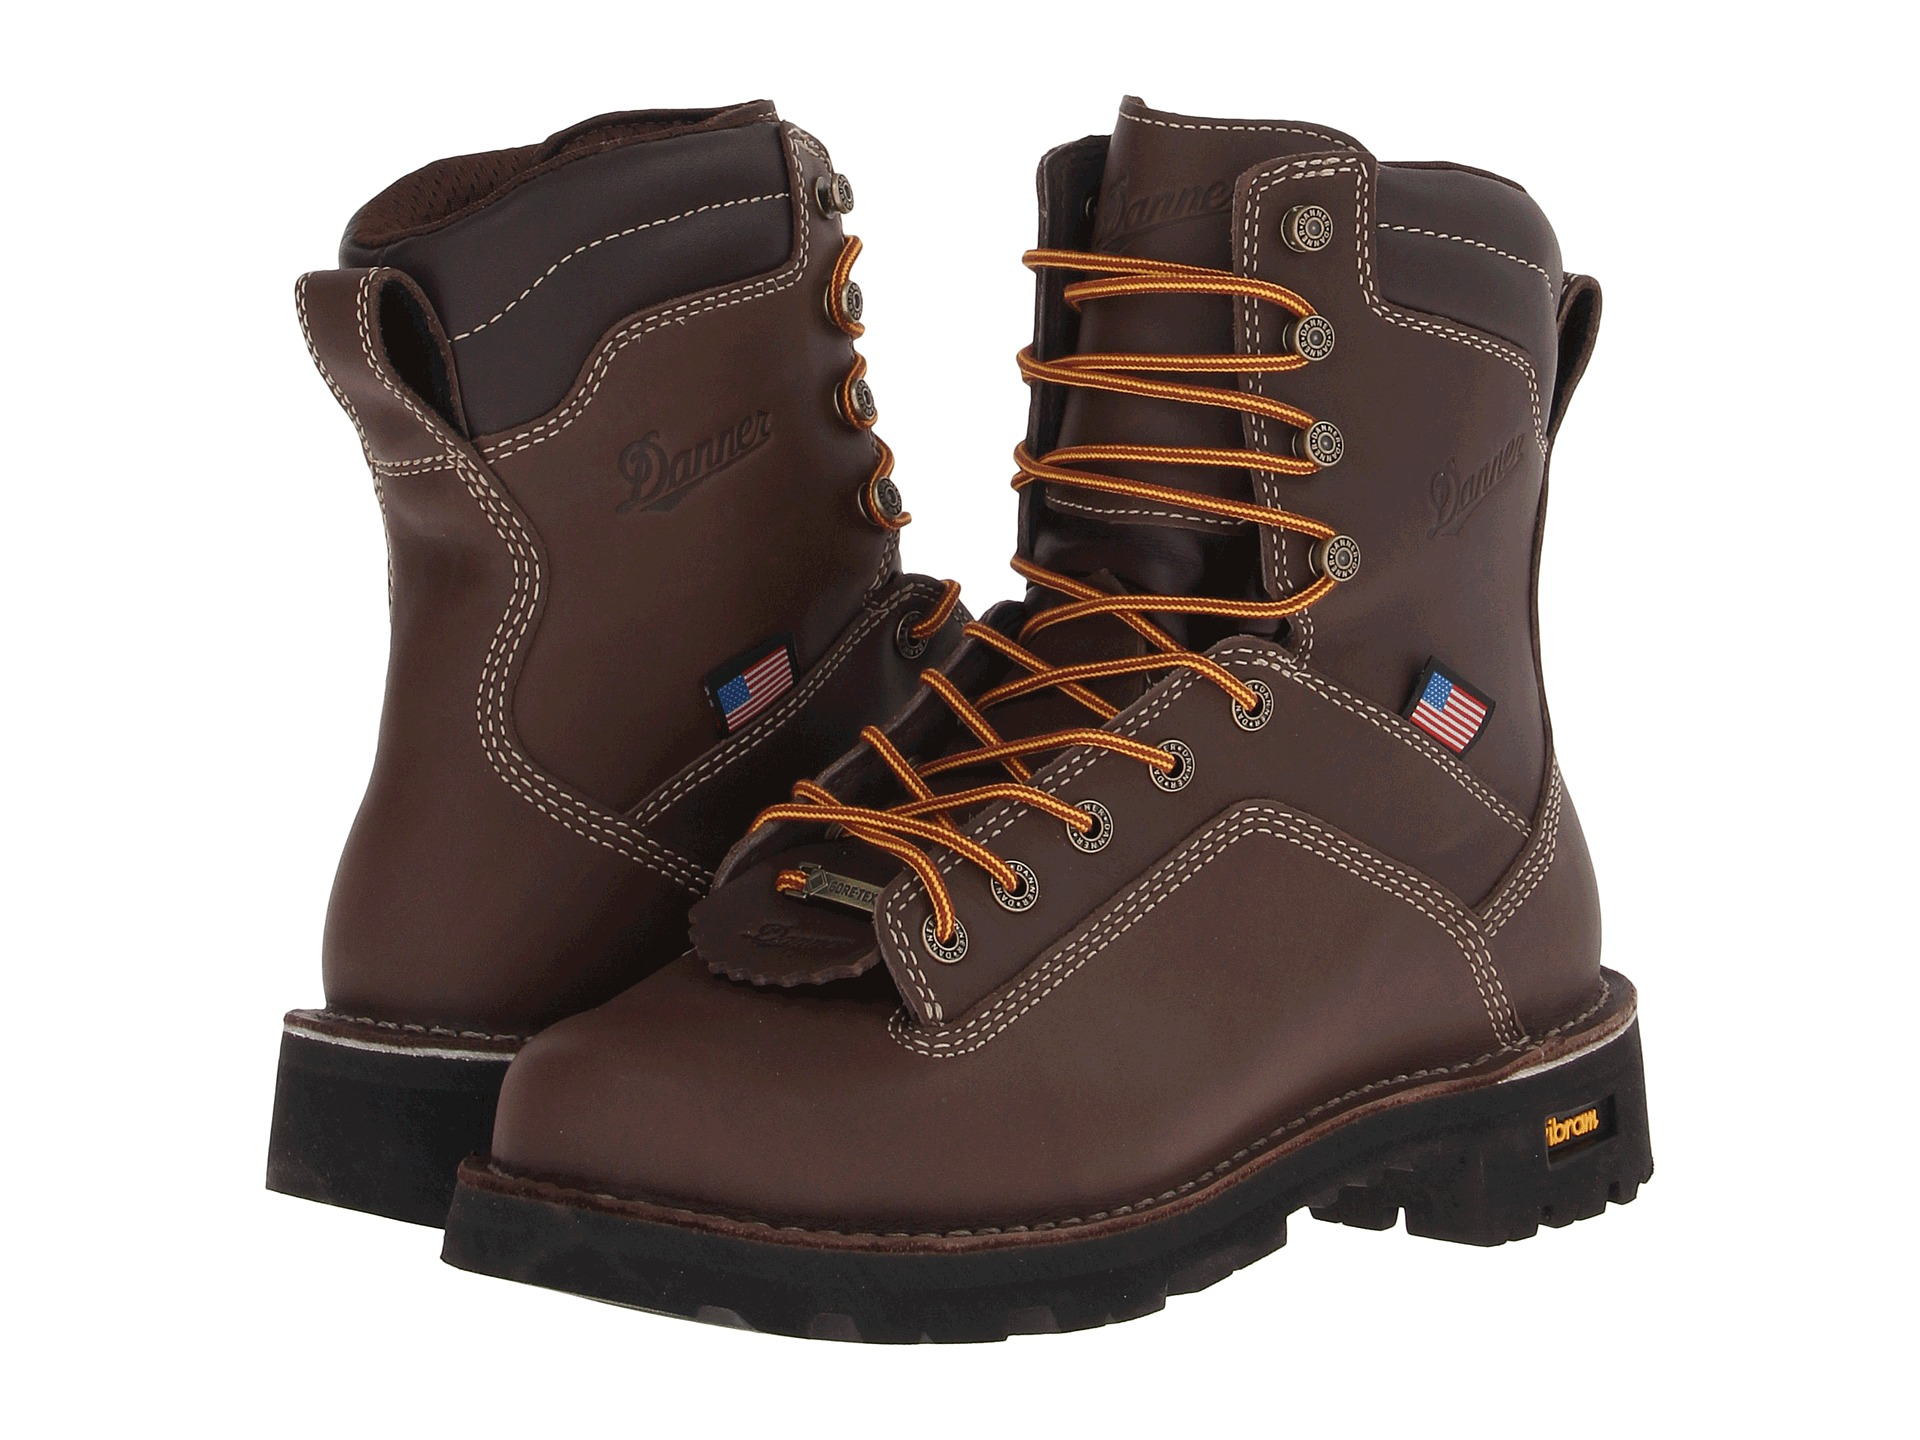 Danner Boots Phone Number Yu Boots